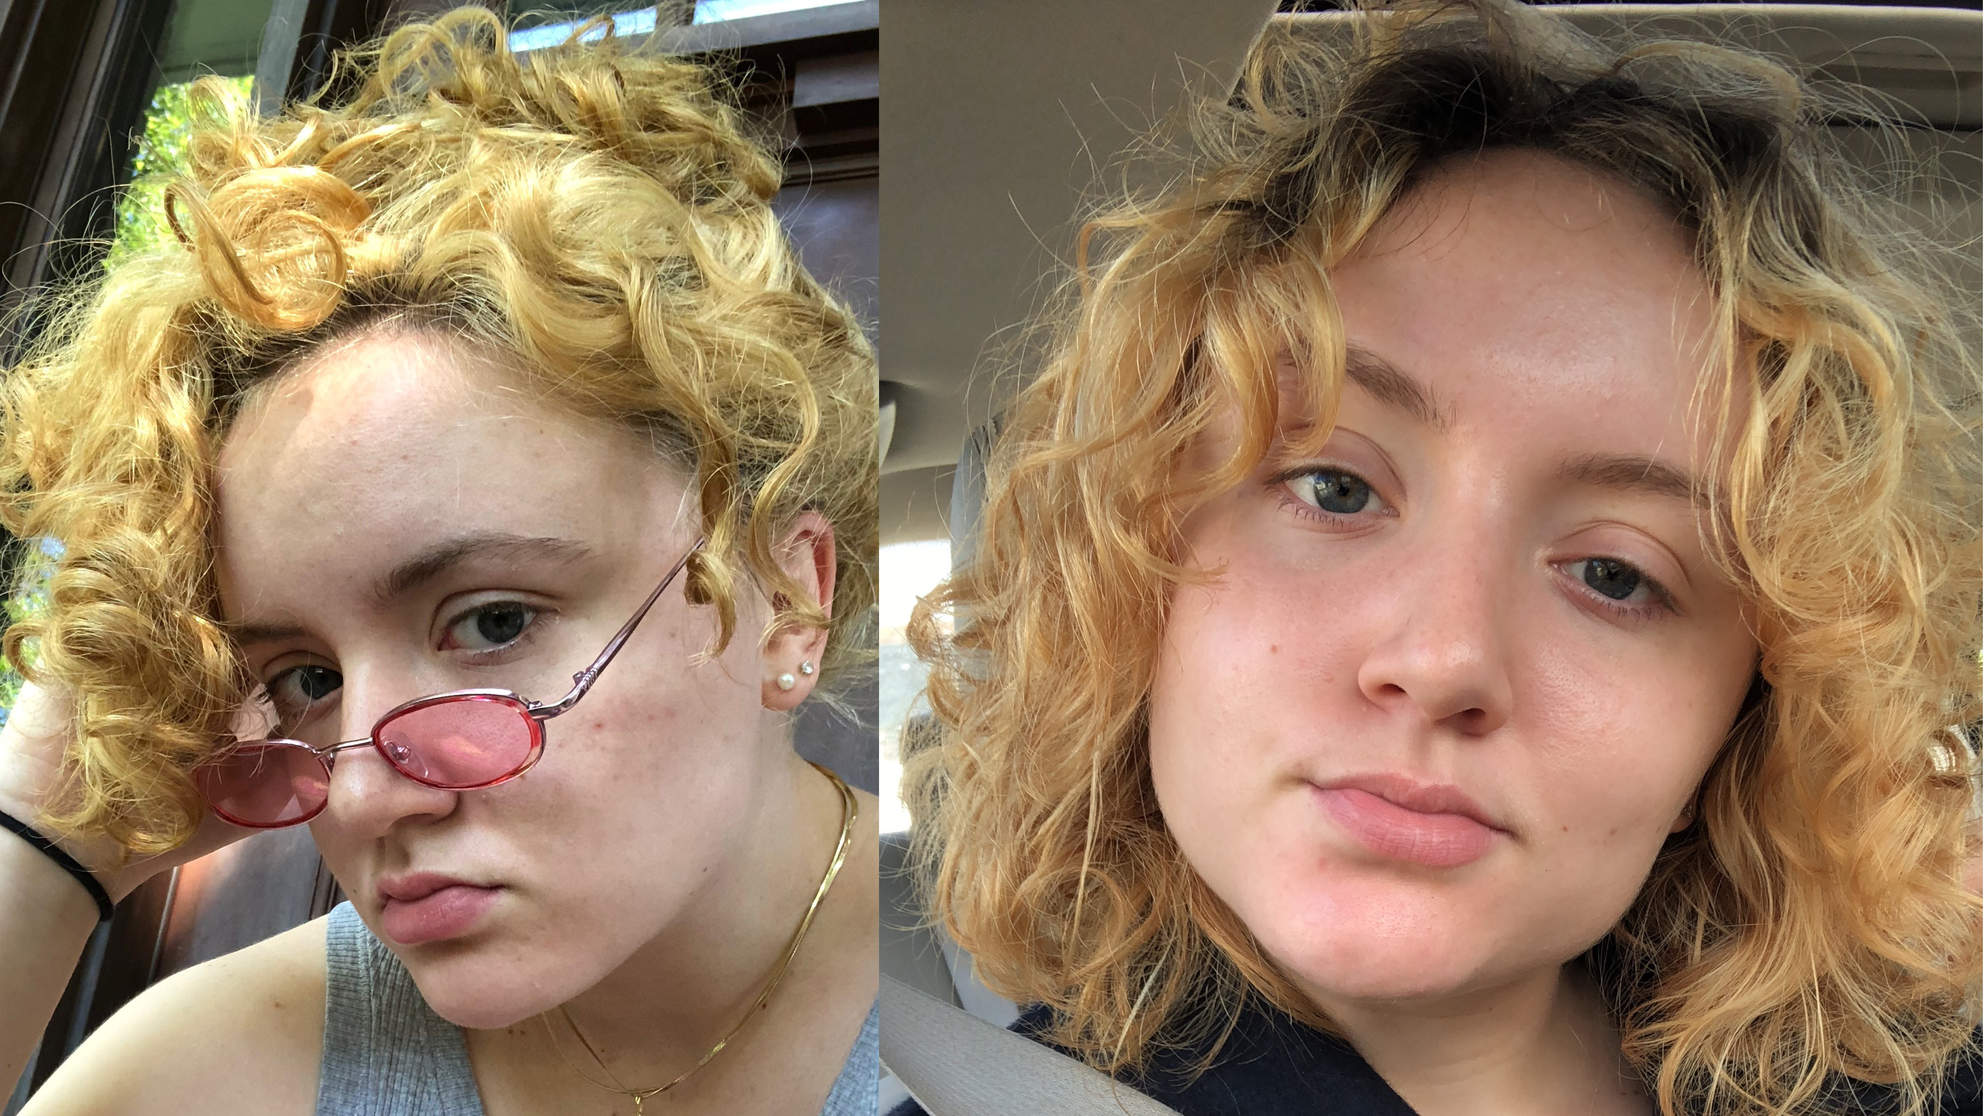 tg-before-after skin transformation